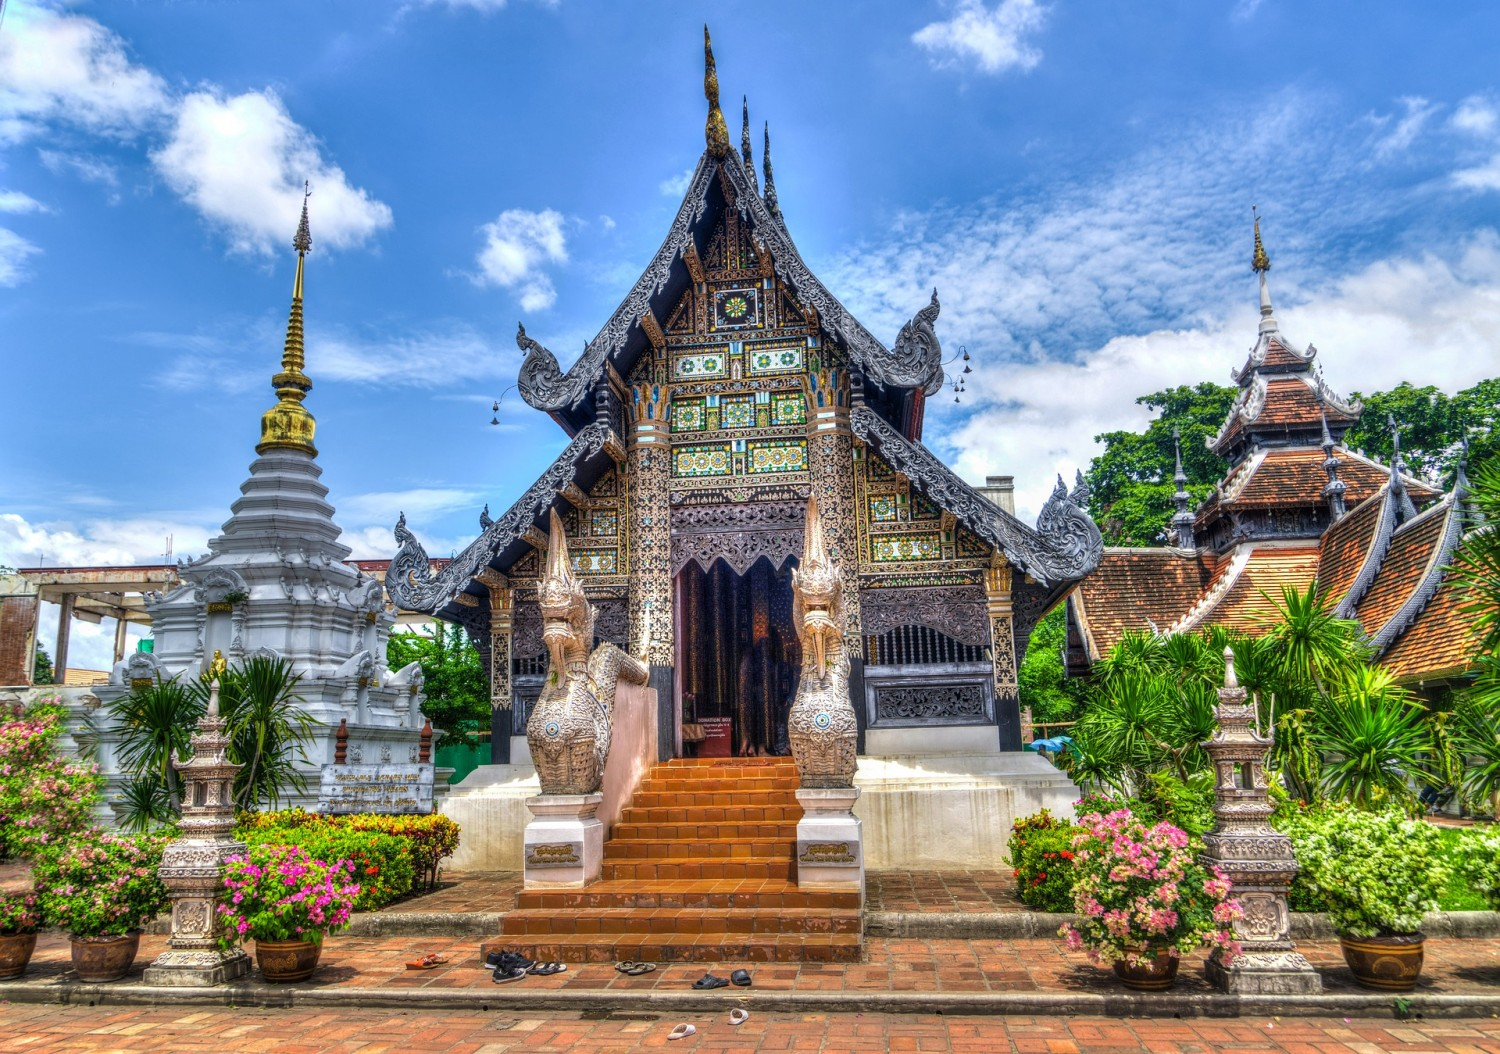 Chiang Mai. Four awesome Southeast Asia travel itineraries I Photography I Itinerary I Landscape I Food I Architecture I Laos I Thailand I Cambodia I Myanmar I Malaysia I Vietnam. Read the full travel guide now #travel #backpacking